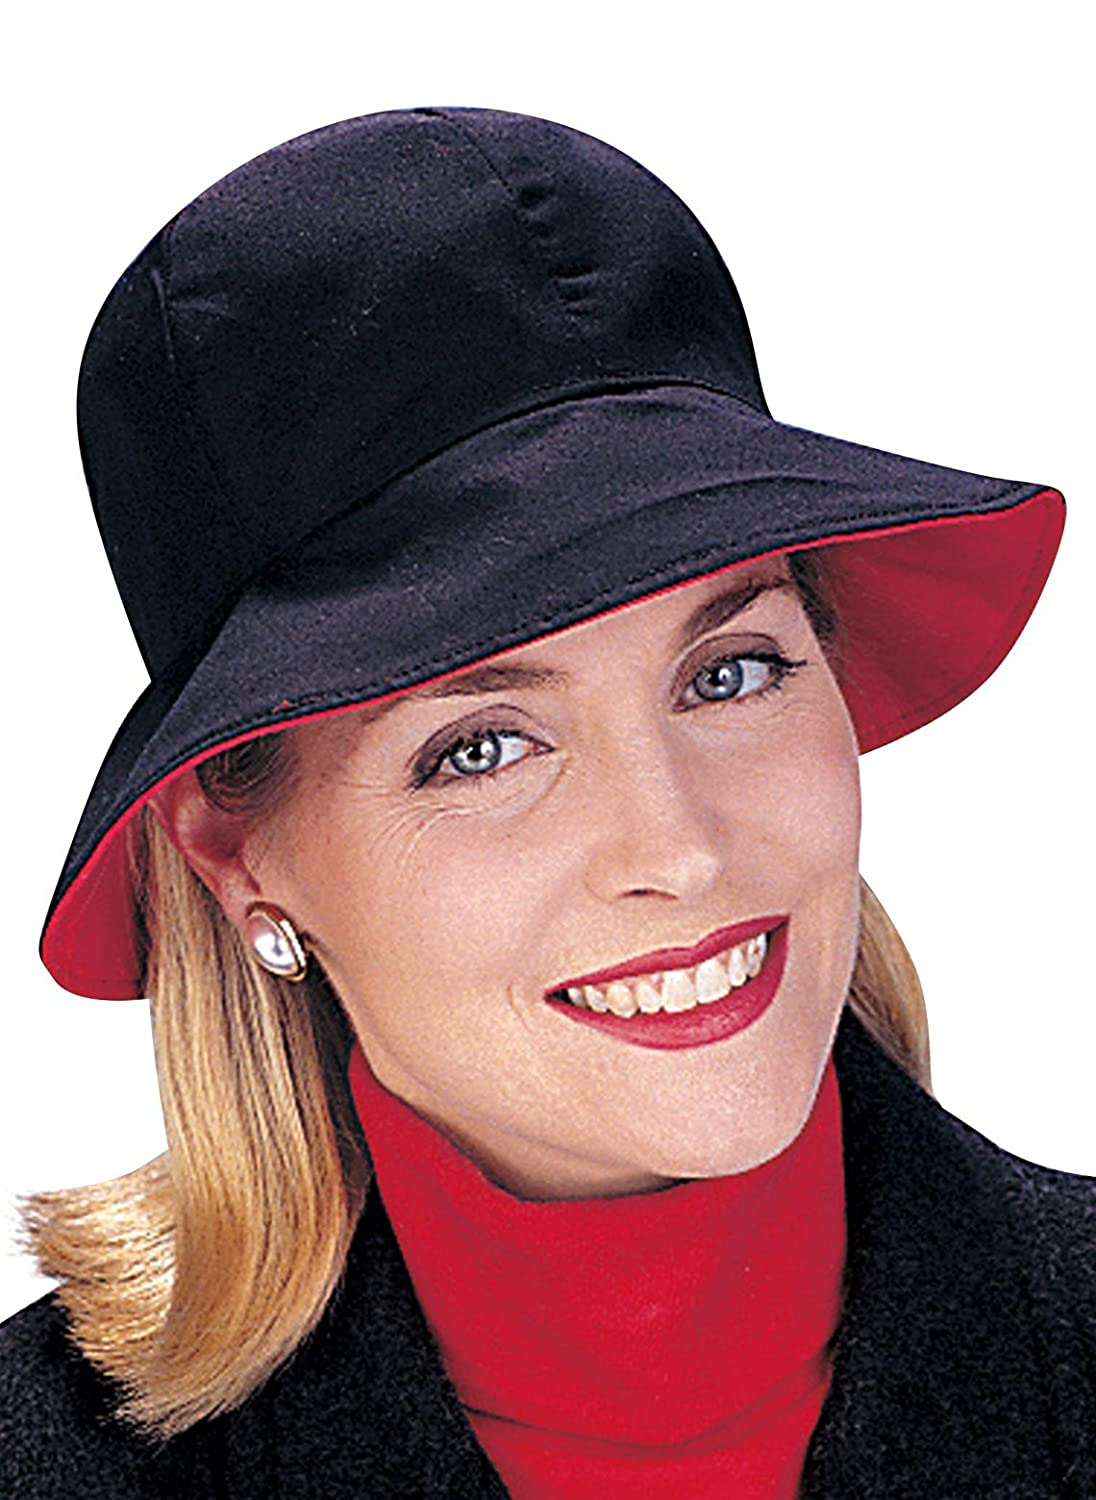 Carol Wright Gifts Reversible Rain Hat, Black/Red, One Size Fits All 10073781